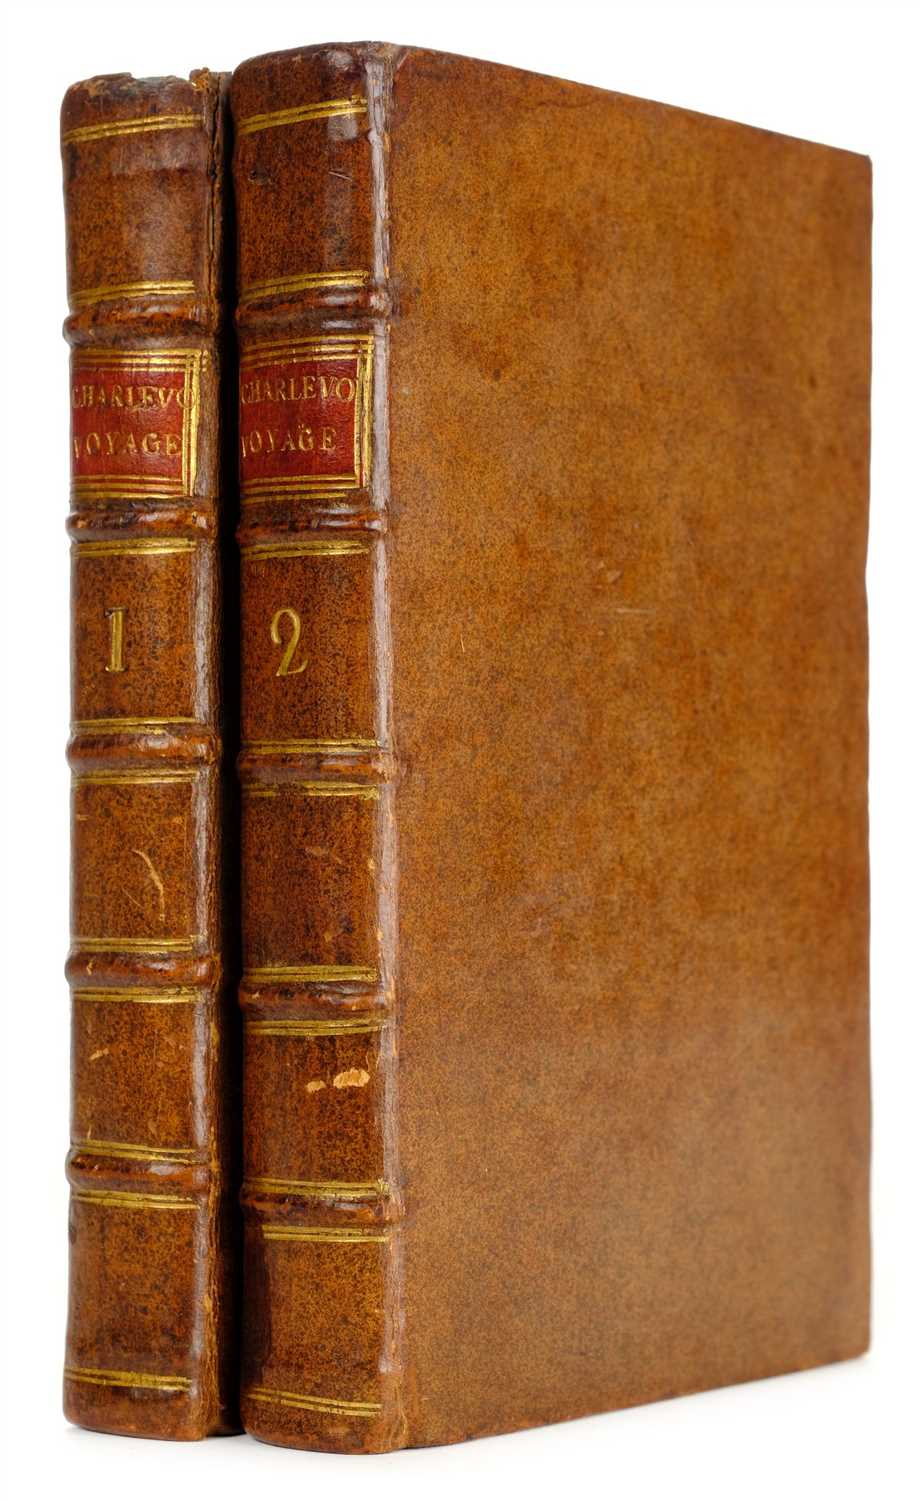 Lot 235 - Charlevoix (Pierre Francois Xavier de). Journal of a Voyage to North-America., 1761